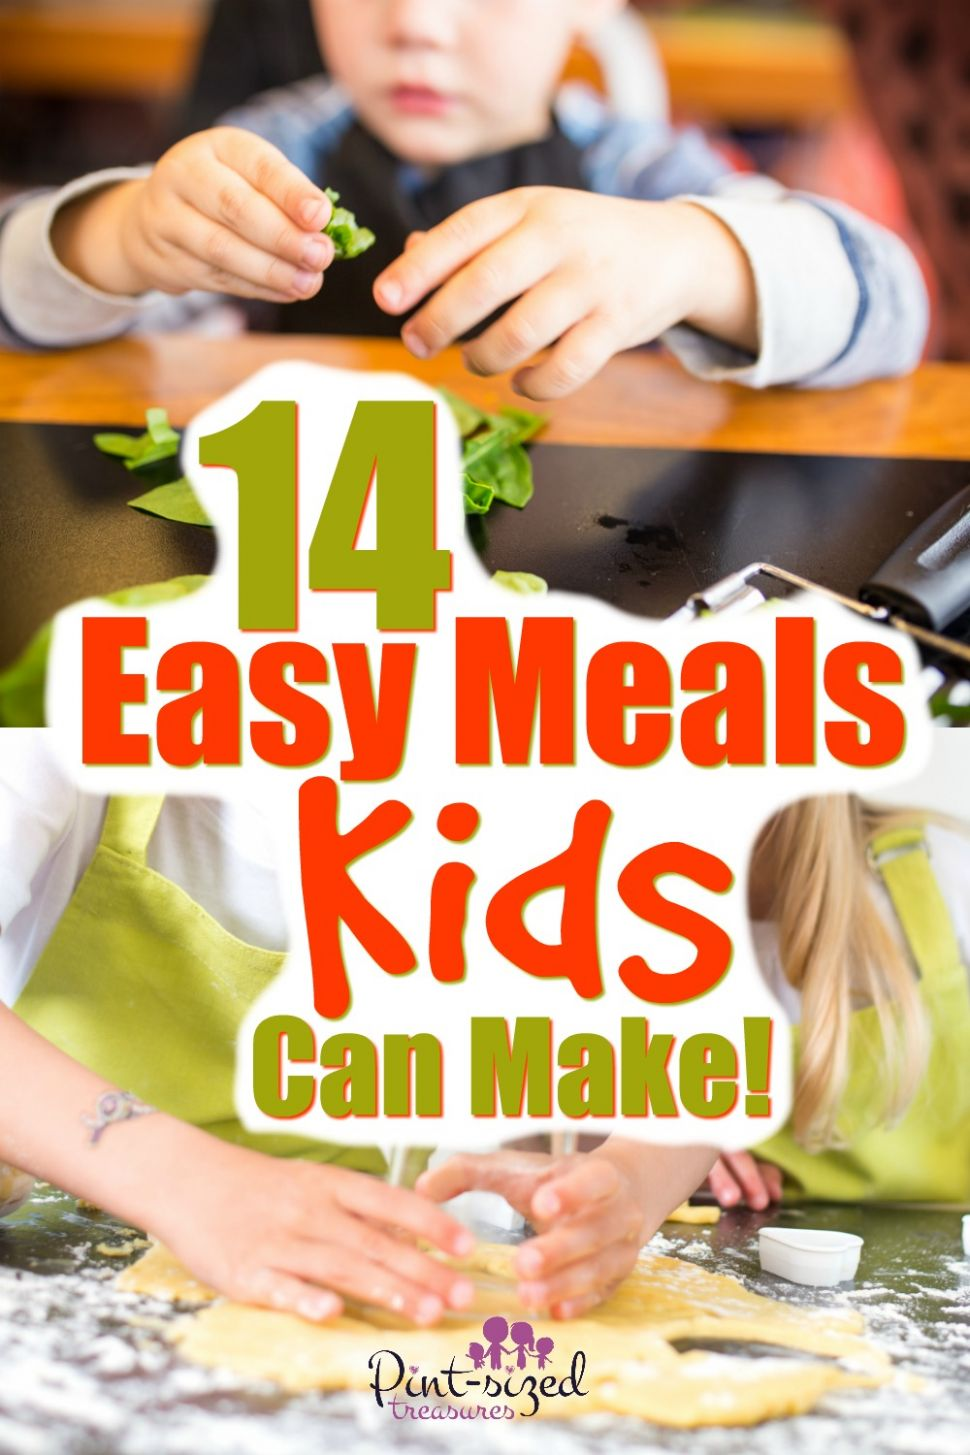 12 Easy Meals Kids Can Make